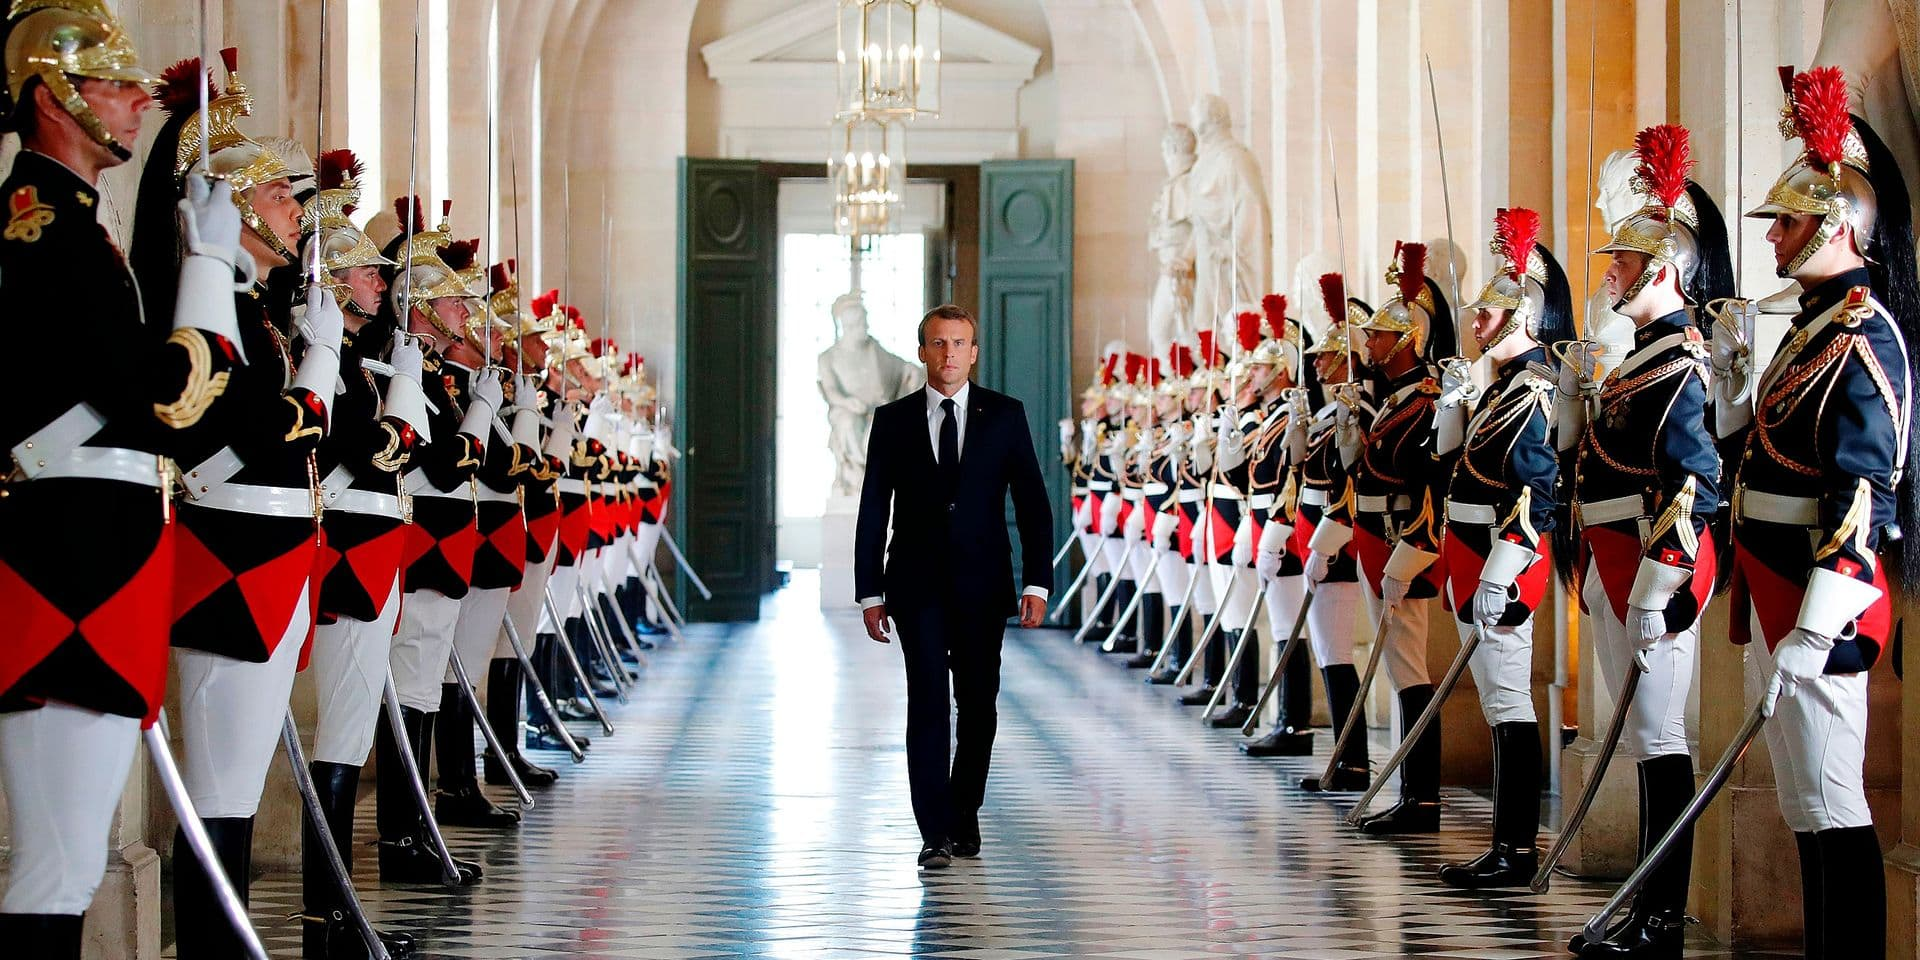 French President Emmanuel Macron walks through the Galerie des Bustes (Busts Gallery) to access the Versailles Palace's hemicycle to address both the upper and lower houses of the French parliament (National Assembly and Senate) at a special session in Versailles near Paris, France, July 9, 2018. The French President will gather both houses of parliament at the opulent Versailles Palace on July 9 for what has become an annual address on his plans for overhauling wide swathes of French society and institutions. / AFP PHOTO / POOL / CHARLES PLATIAU